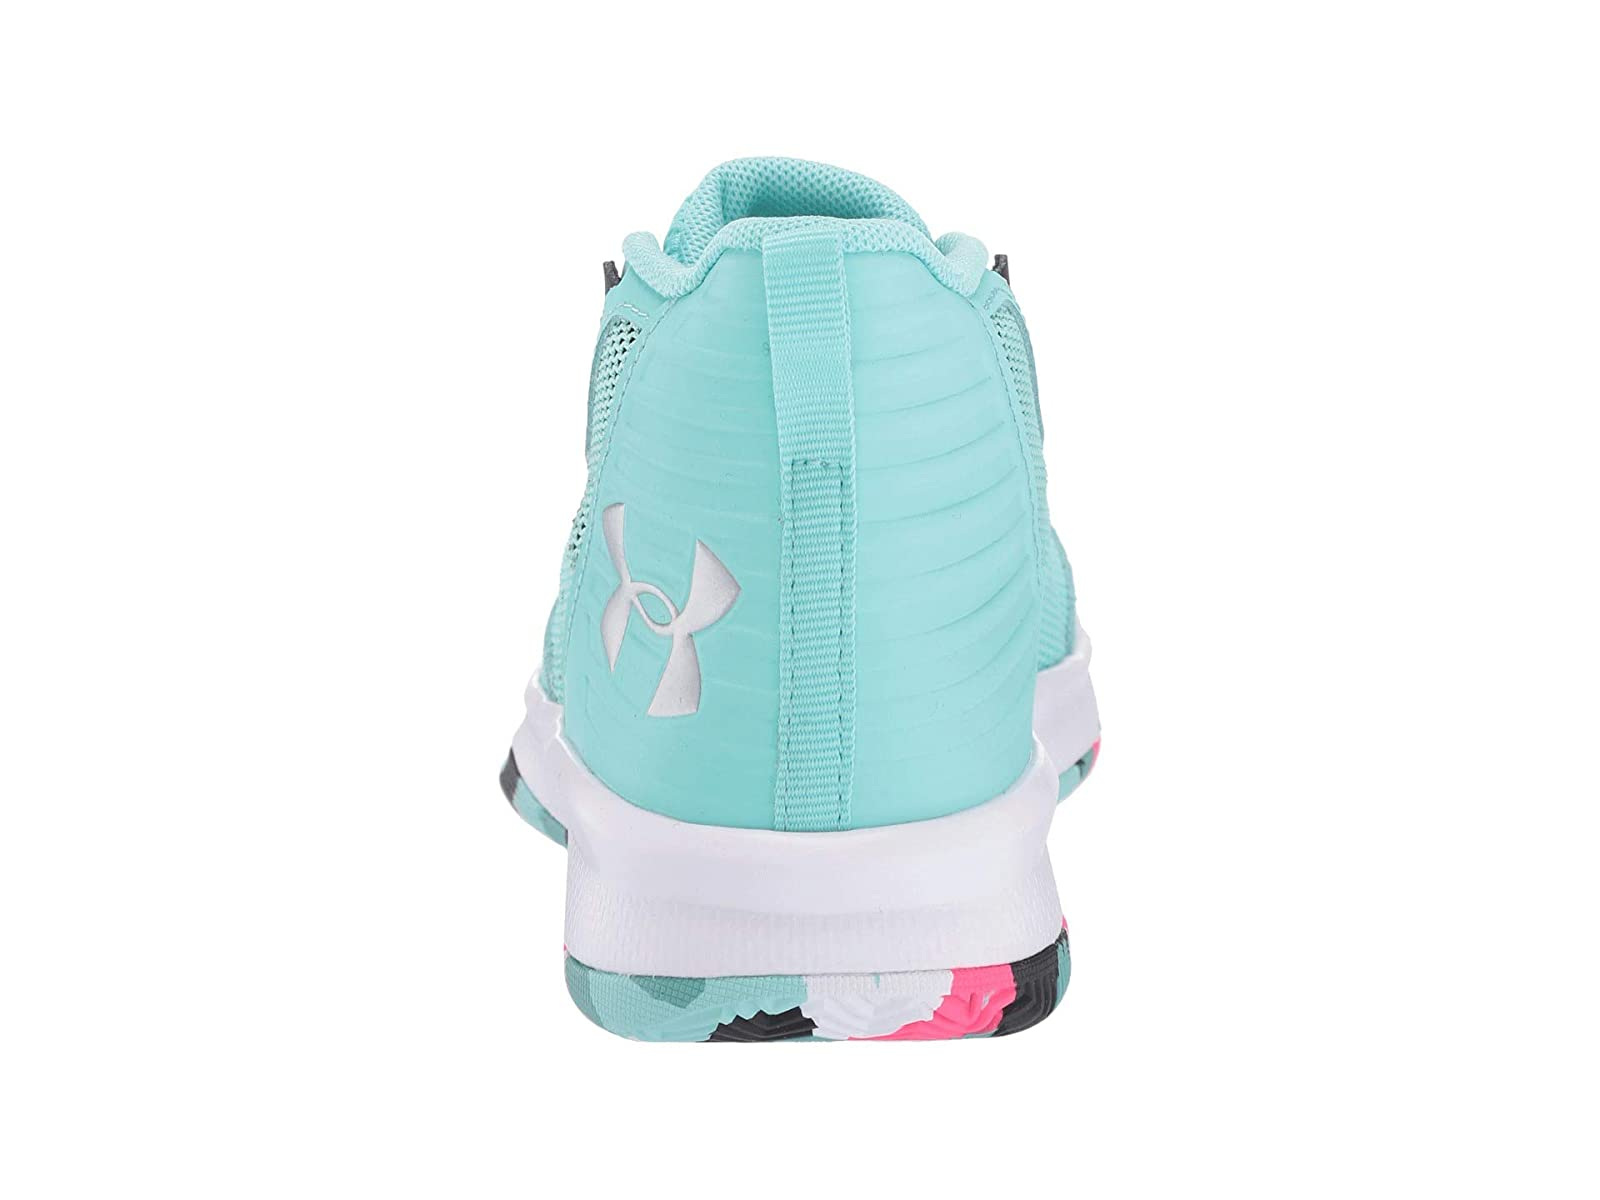 2deca294b41c8 Details about Girl's Shoes Under Armour Kids UA GPS Jet 2018 (Little Kid)